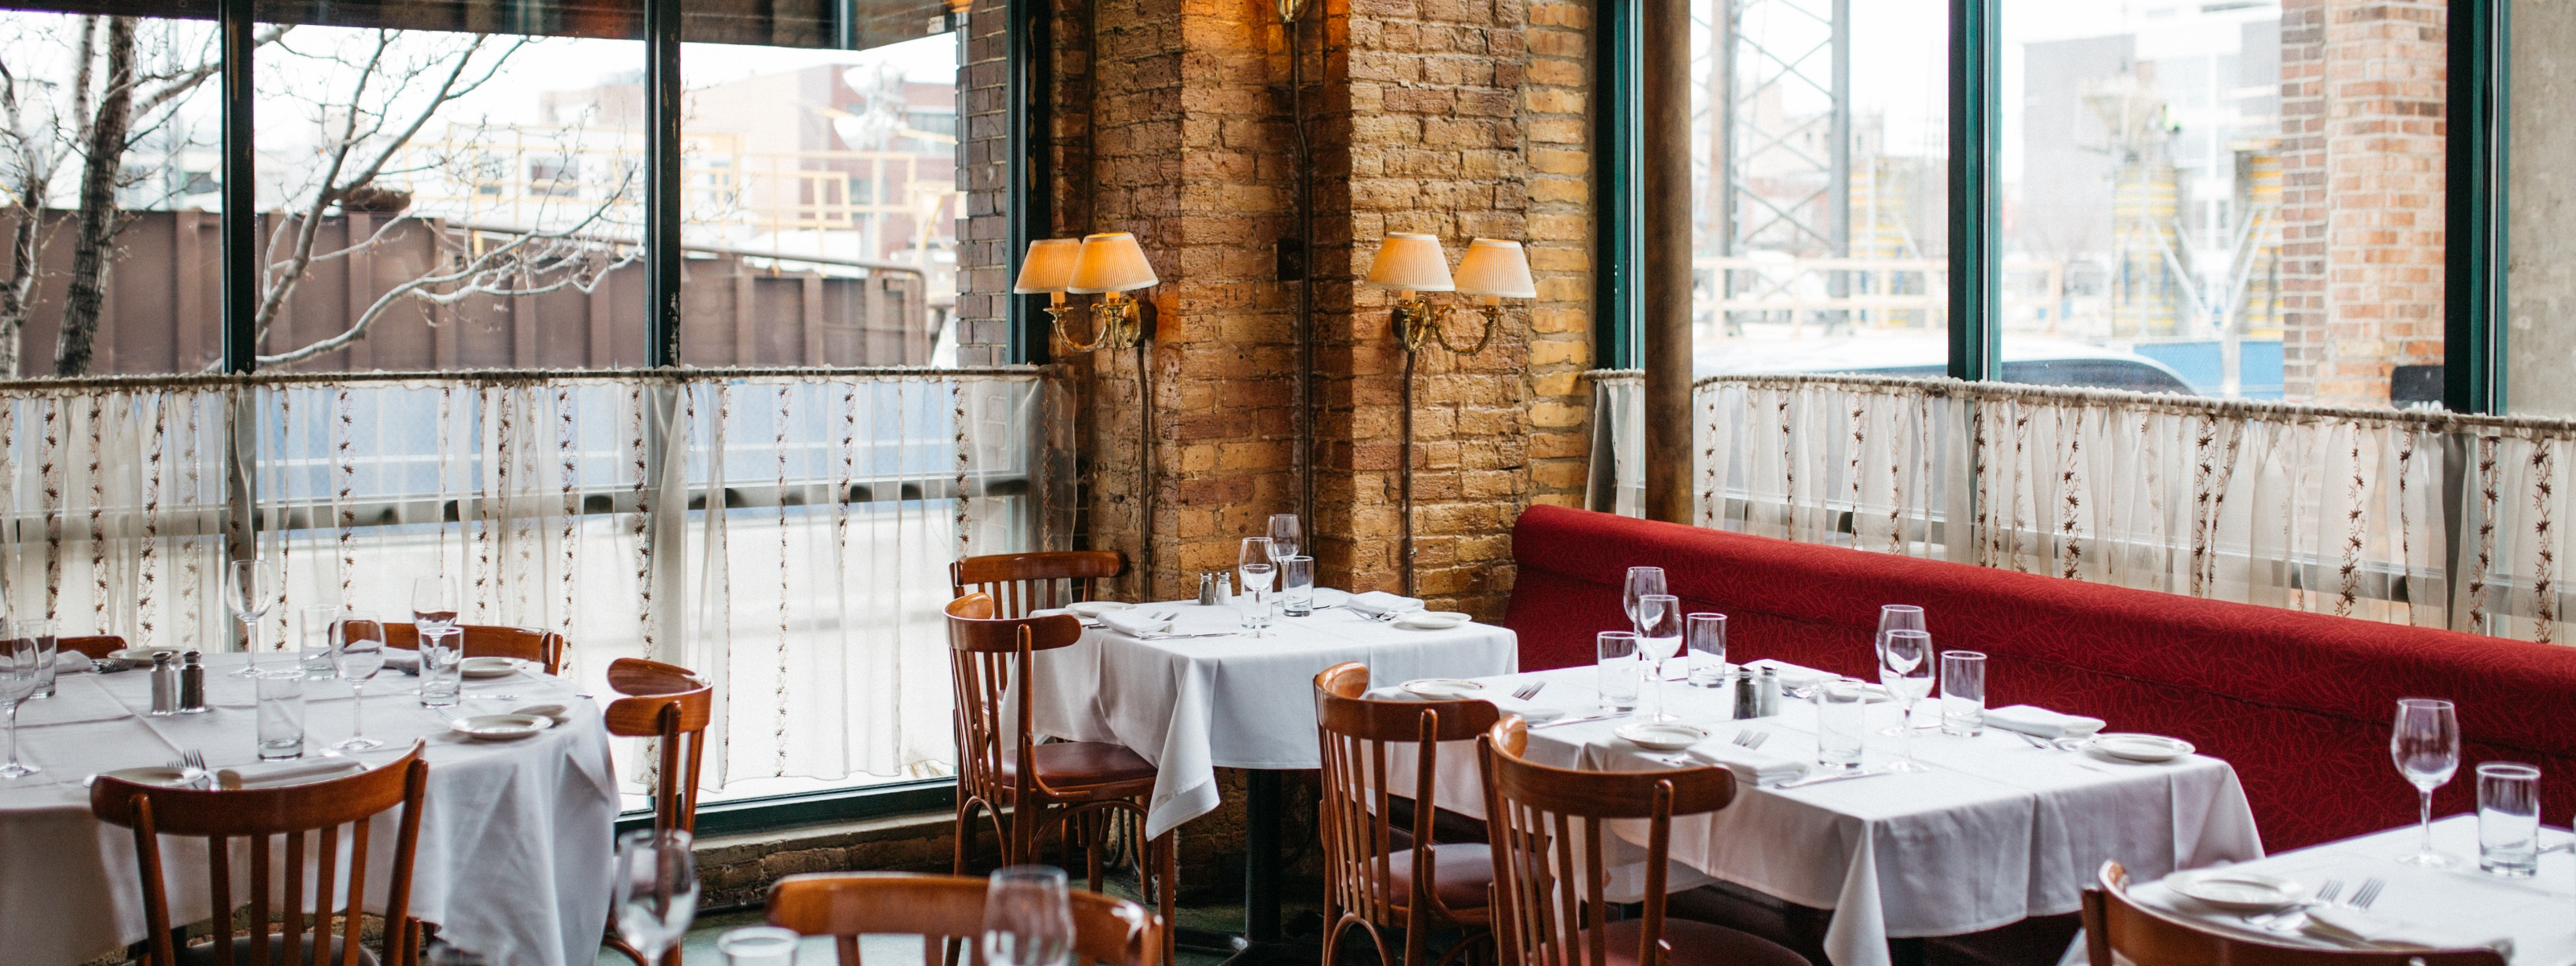 The Best French Restaurants In Chicago Chicago The